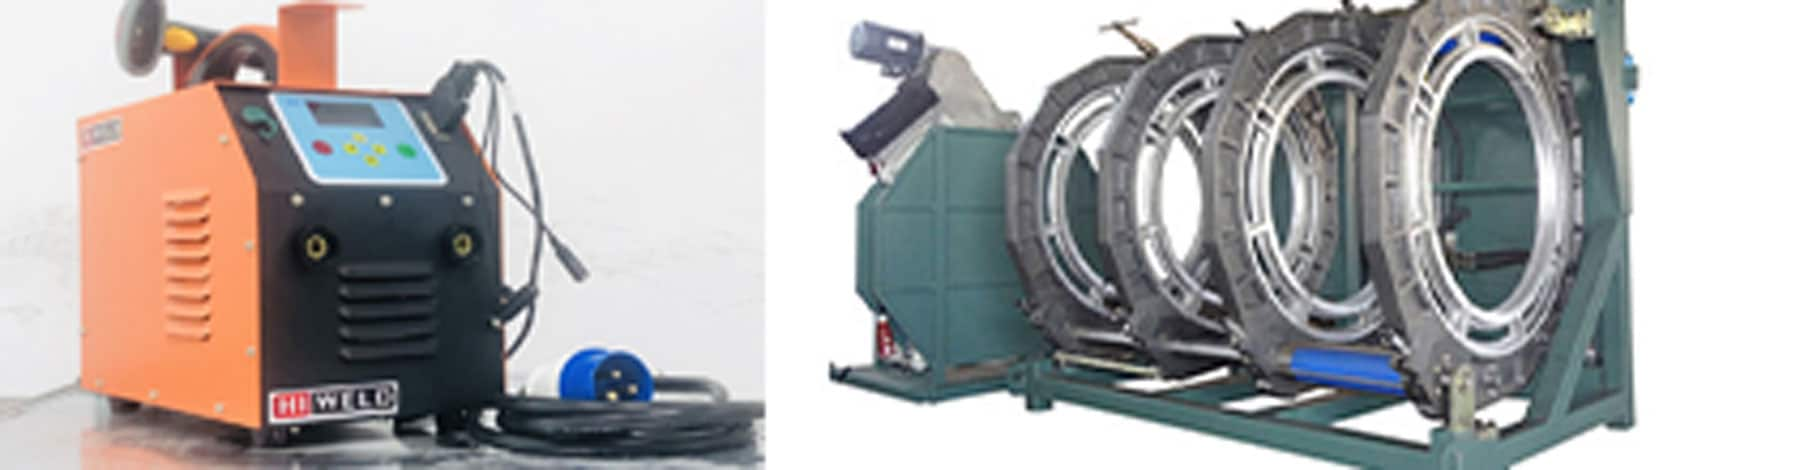 HDPE Welding Machines supply in UAE and Gulf Regions such as Saudi Arabia and Oman